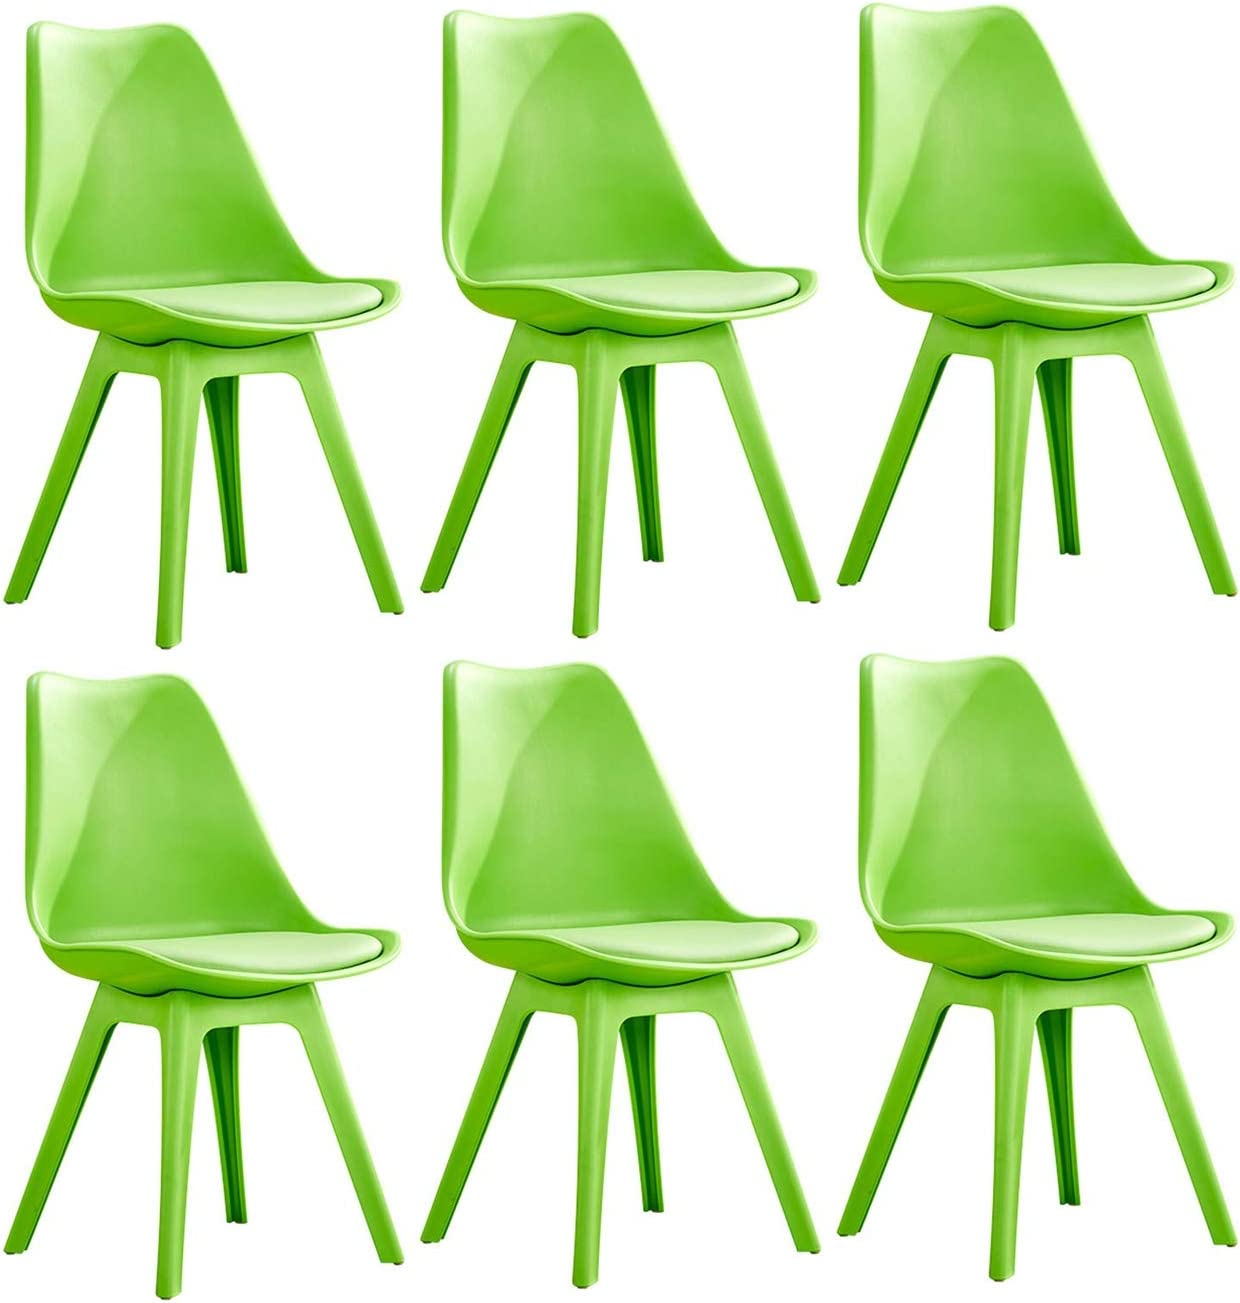 SN Complete Free Shipping Sturdy Chairs Dining Office Lounge Stools with Max 59% OFF C Soft Plastic